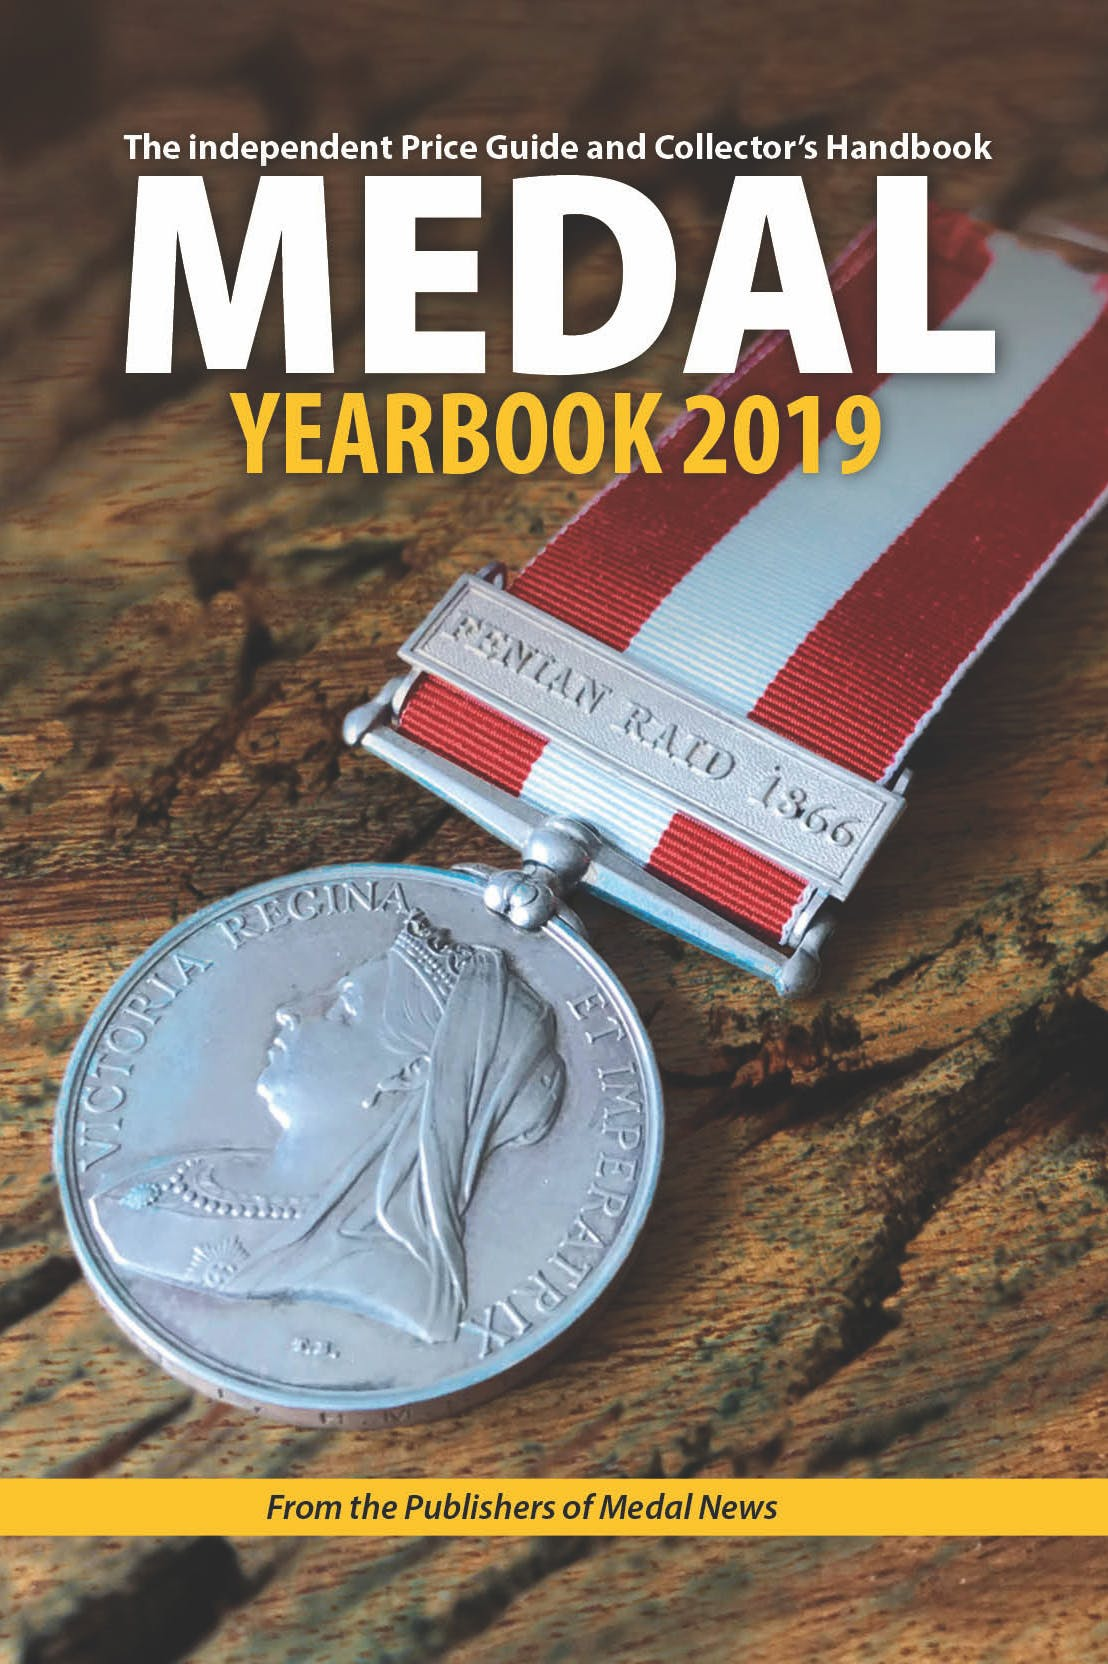 Medal Yearbook 2019 Standard EBook in the Token Publishing Shop